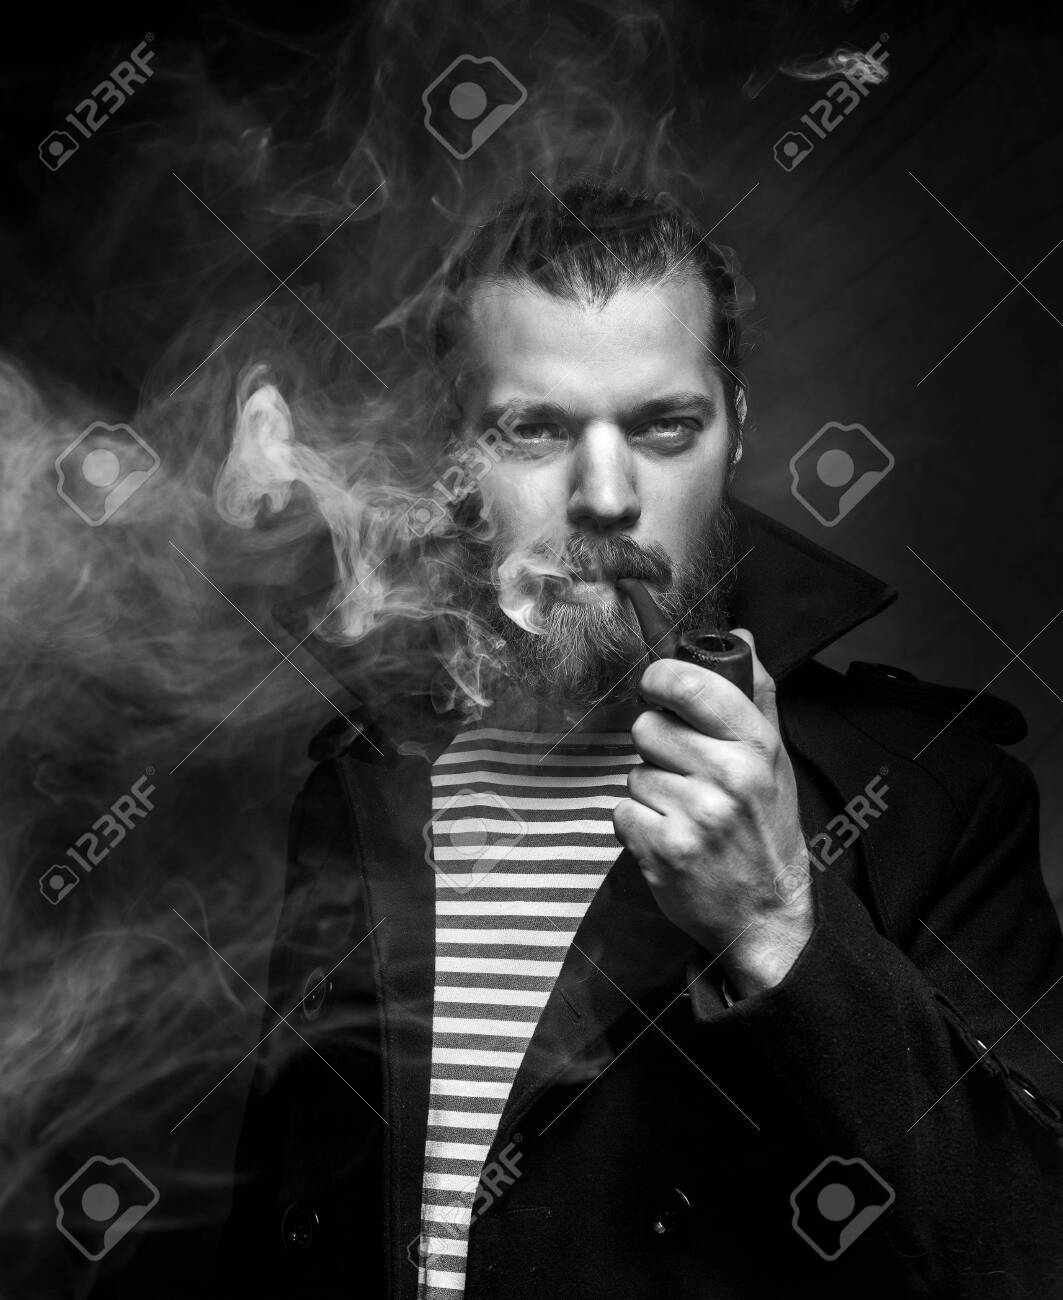 Sailor Man With Beard Smoking Pipe Black And White Photo Creativity Stock Photo Picture And Royalty Free Image Image 99528993